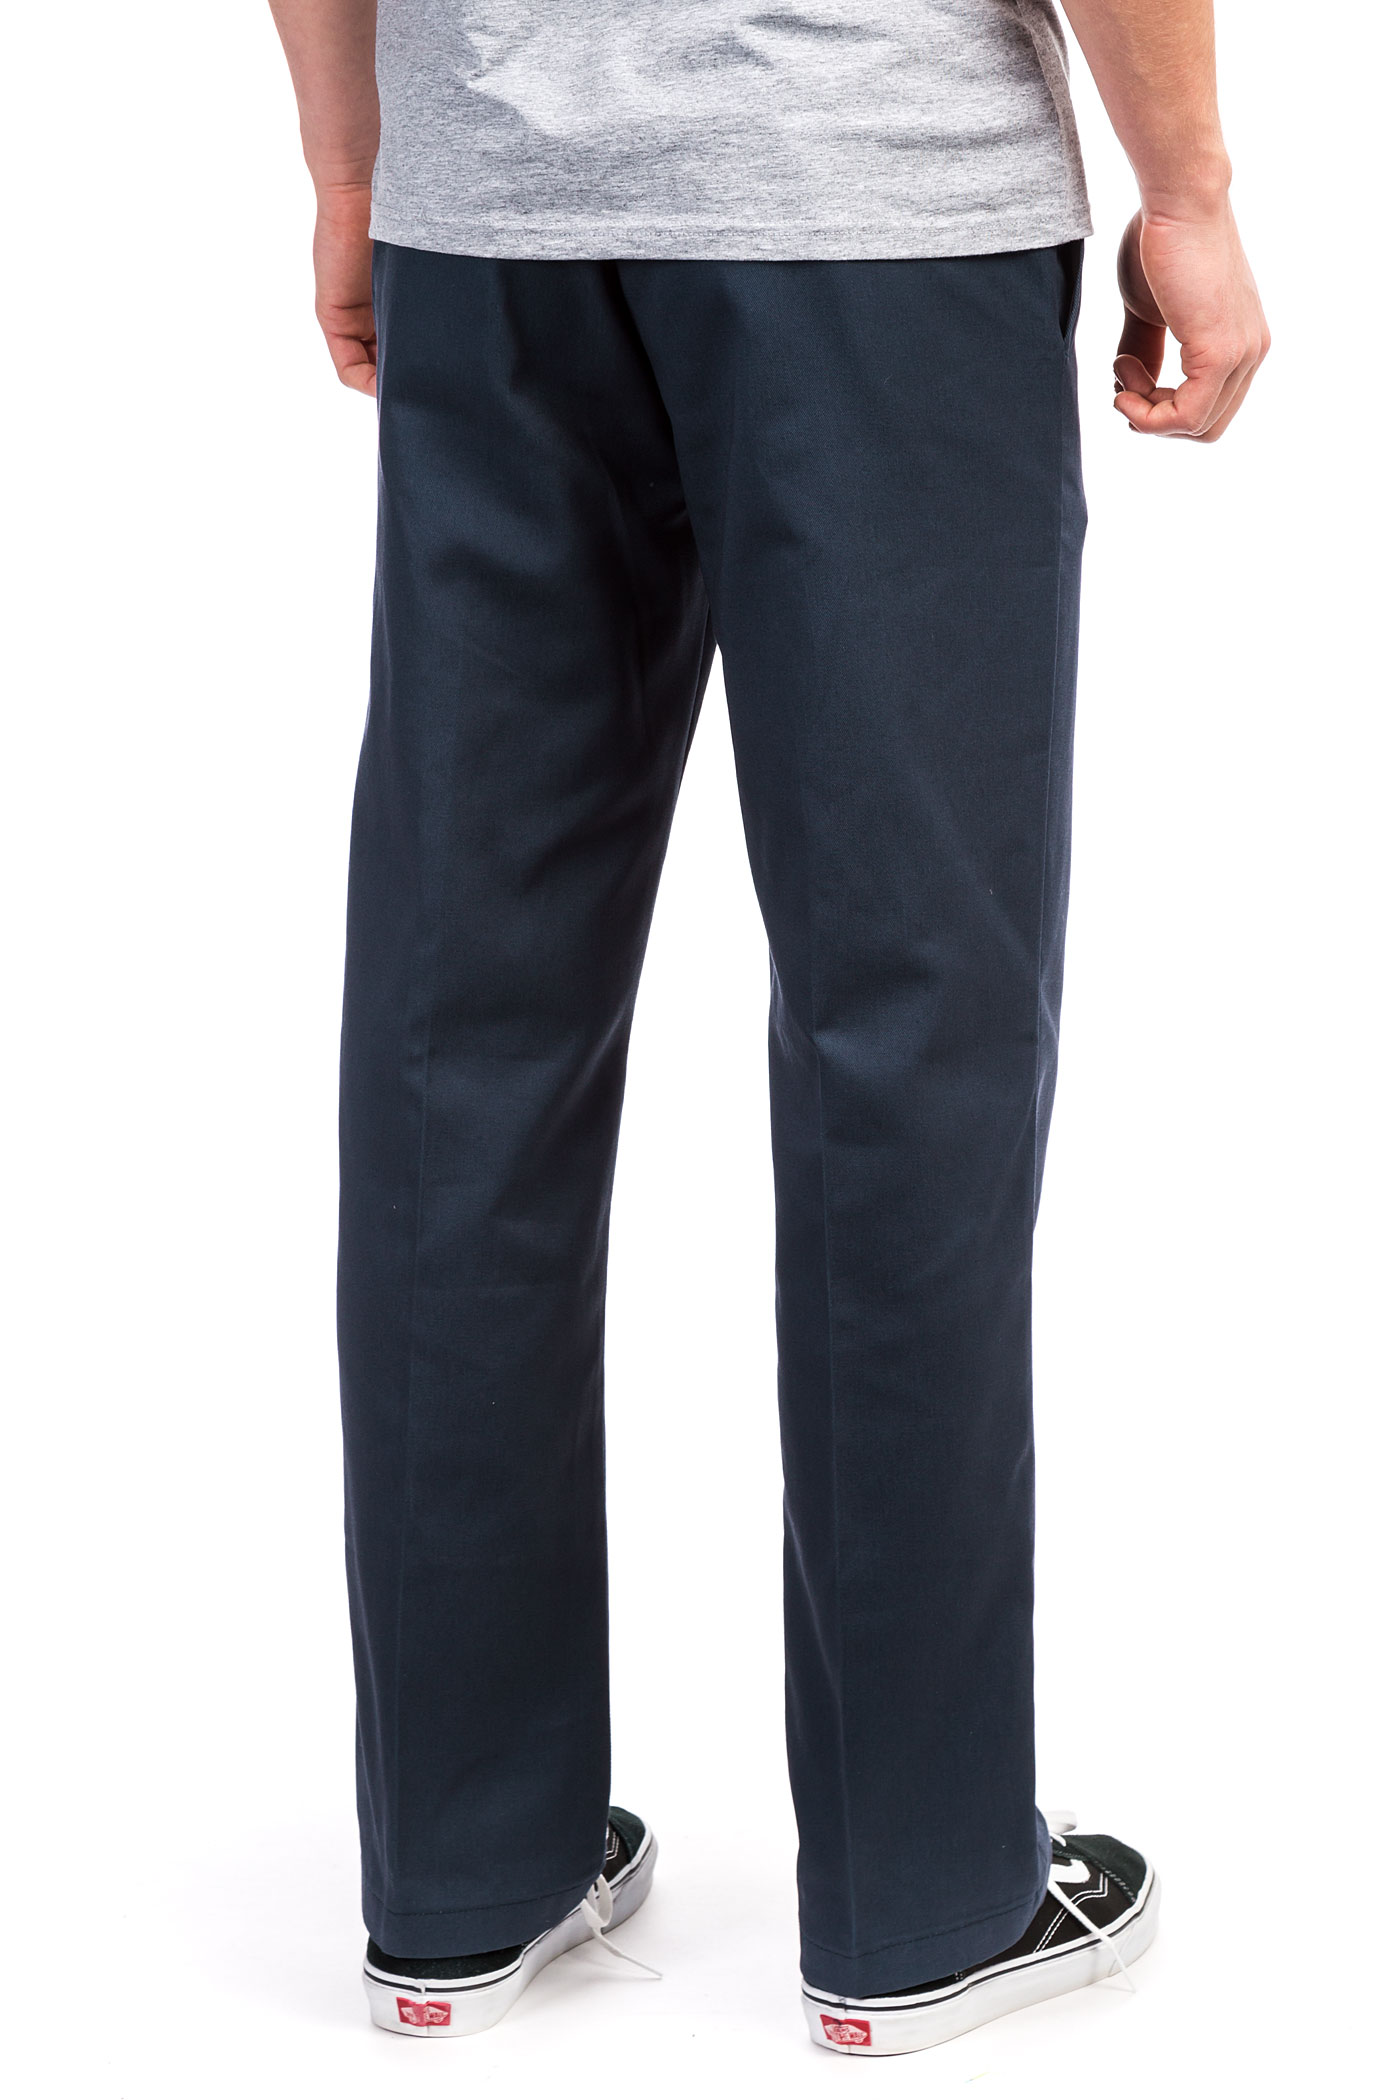 dickies o dog 874 workpant pants navy blue buy at. Black Bedroom Furniture Sets. Home Design Ideas